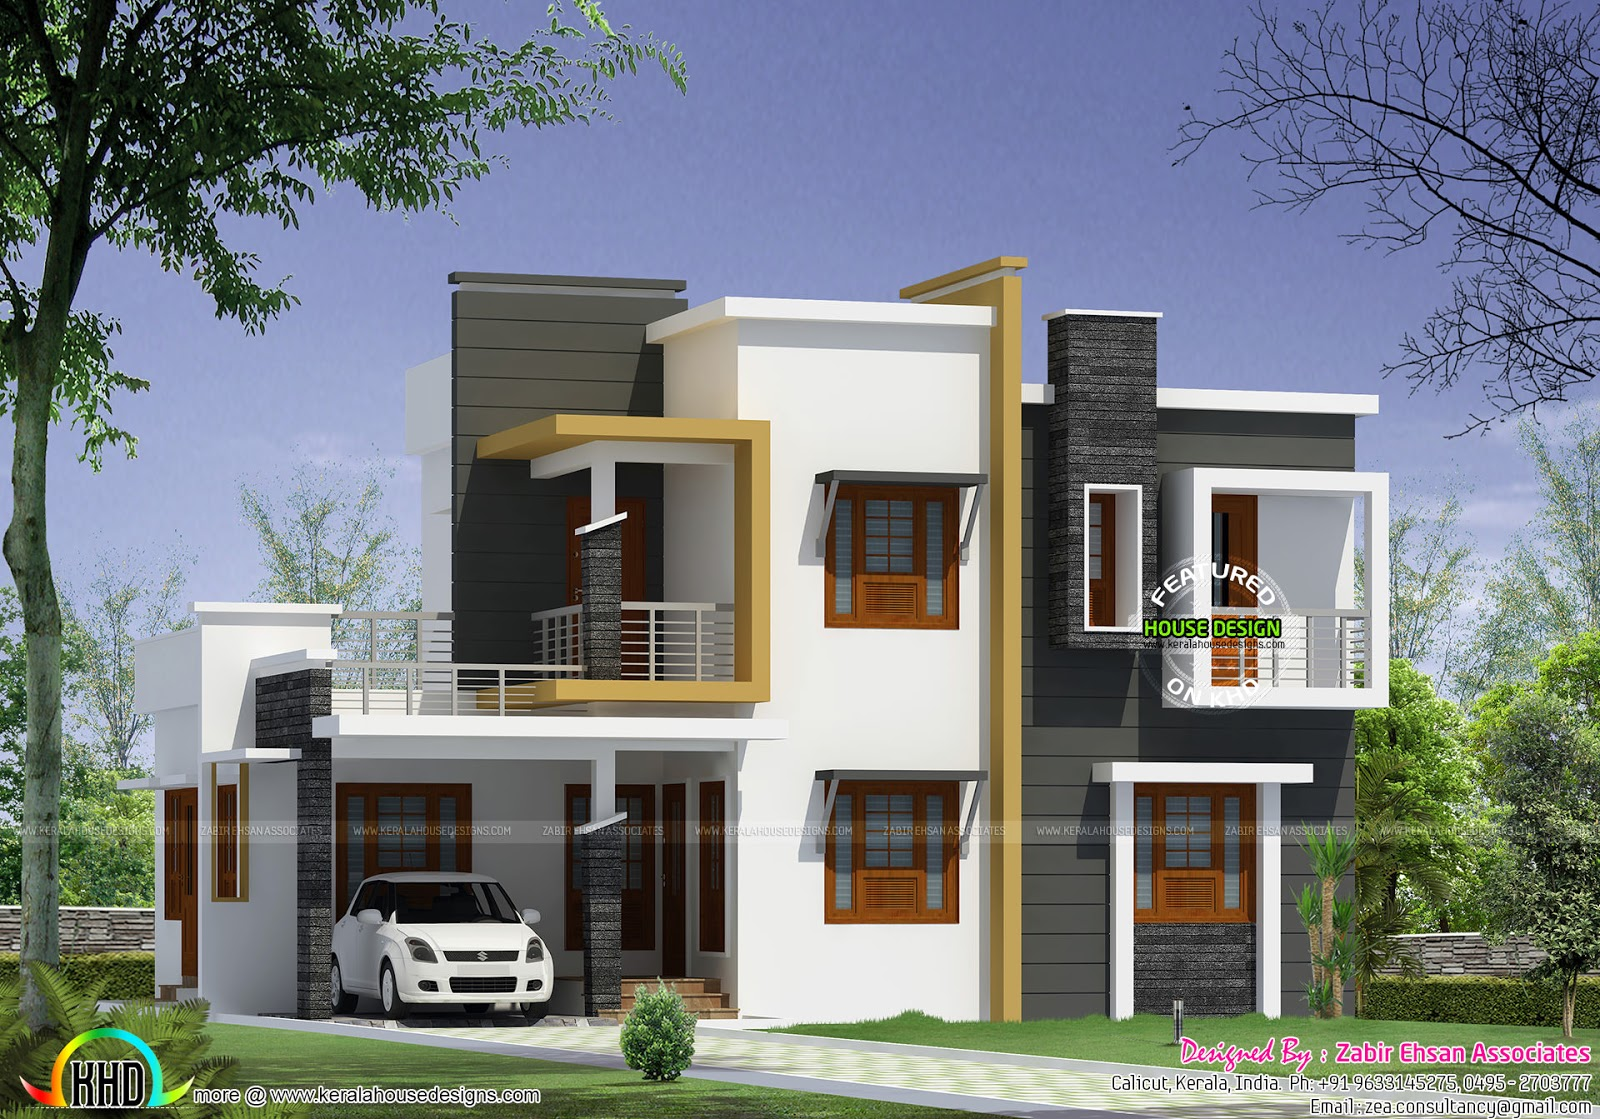 Box type modern house plan kerala home design and floor for House plans with photos